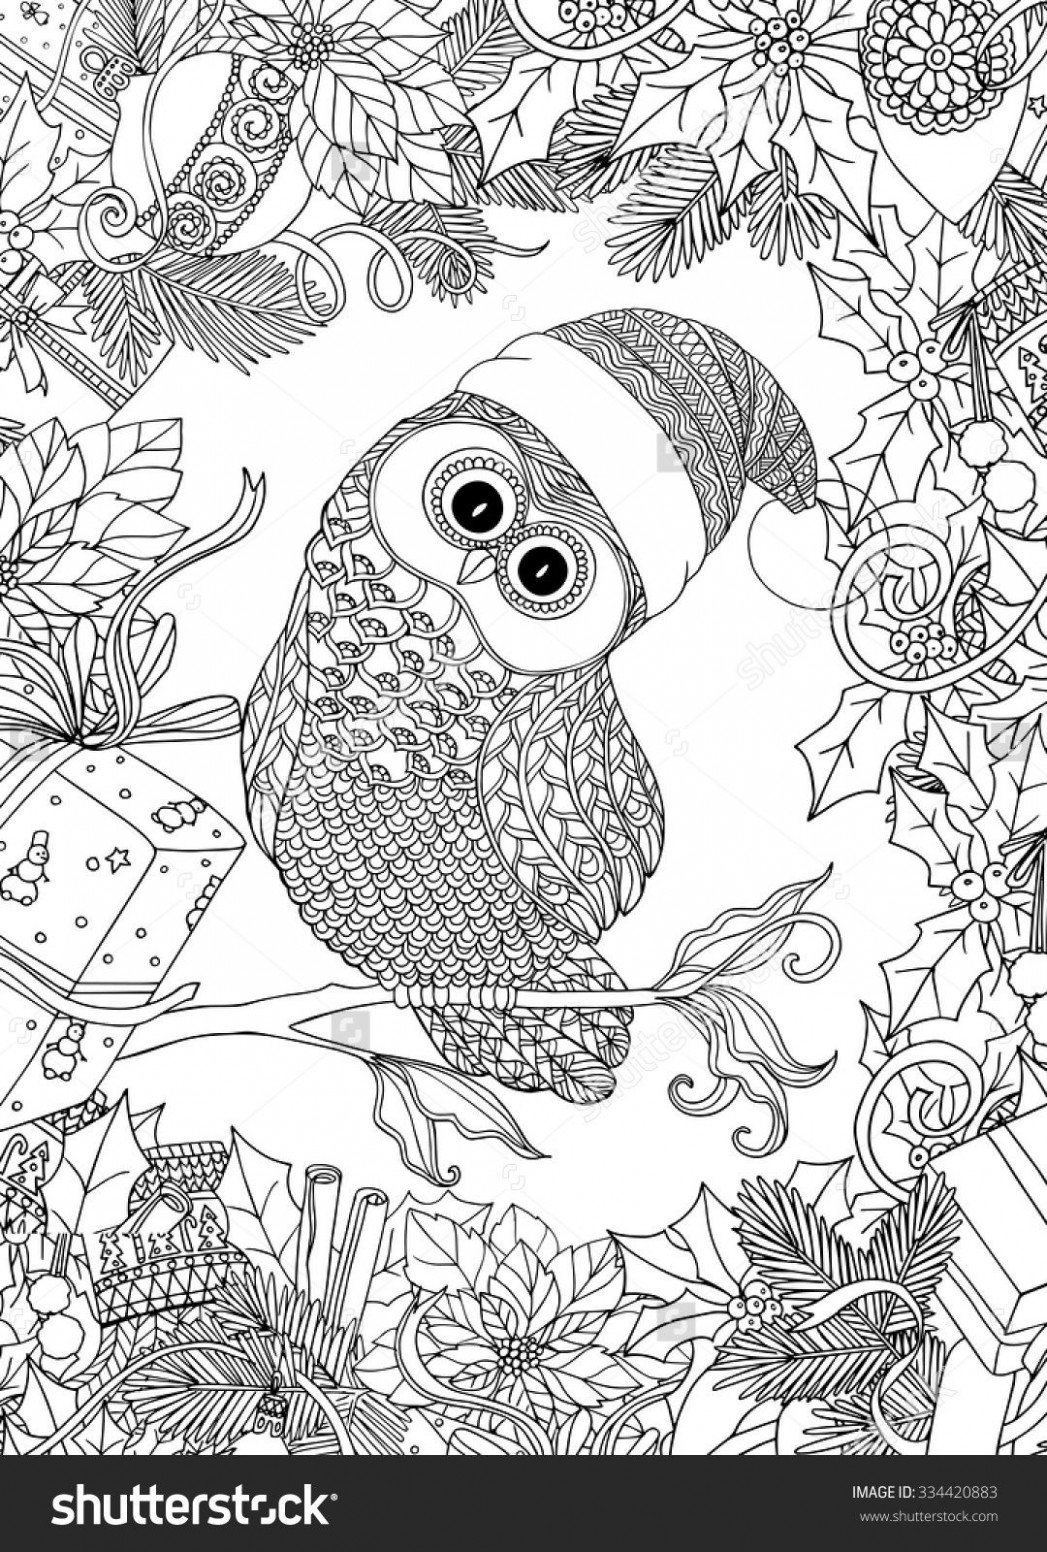 Coloring Book For Adult And Older Children. Coloring Page With ..